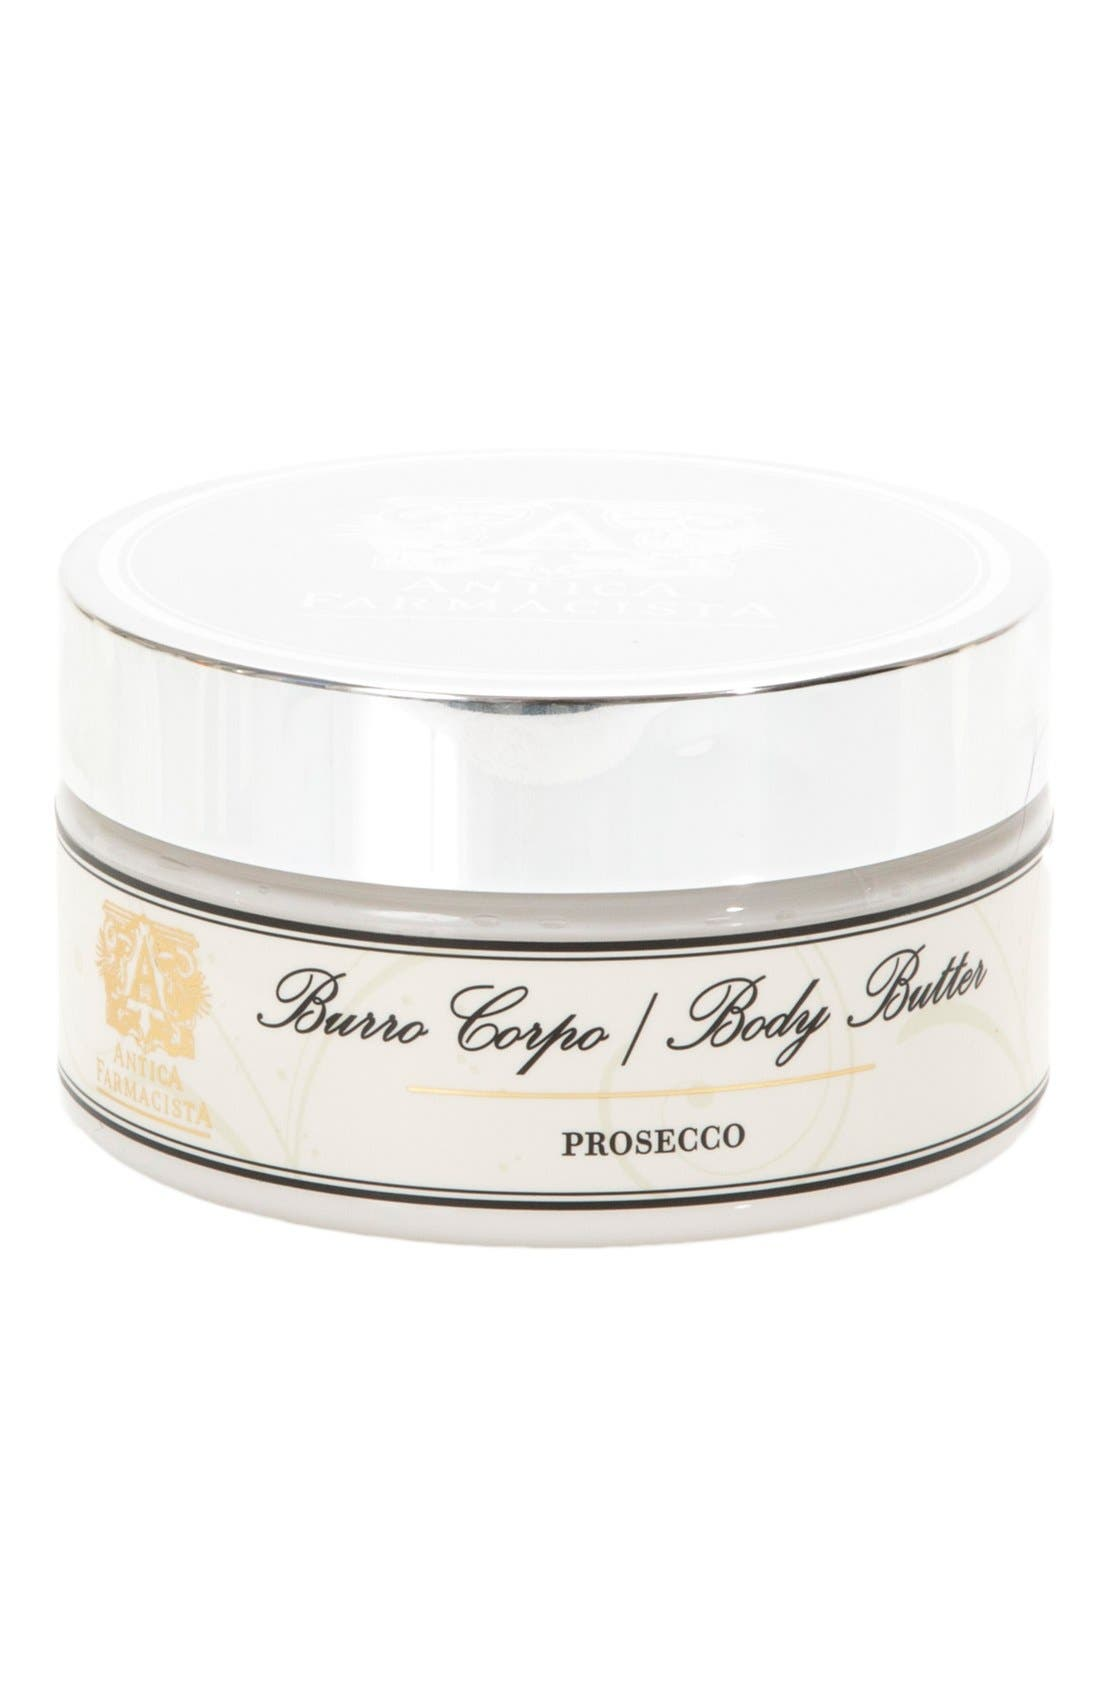 ANTICA FARMACISTA 'Prosecco' Body Butter, Main, color, 000